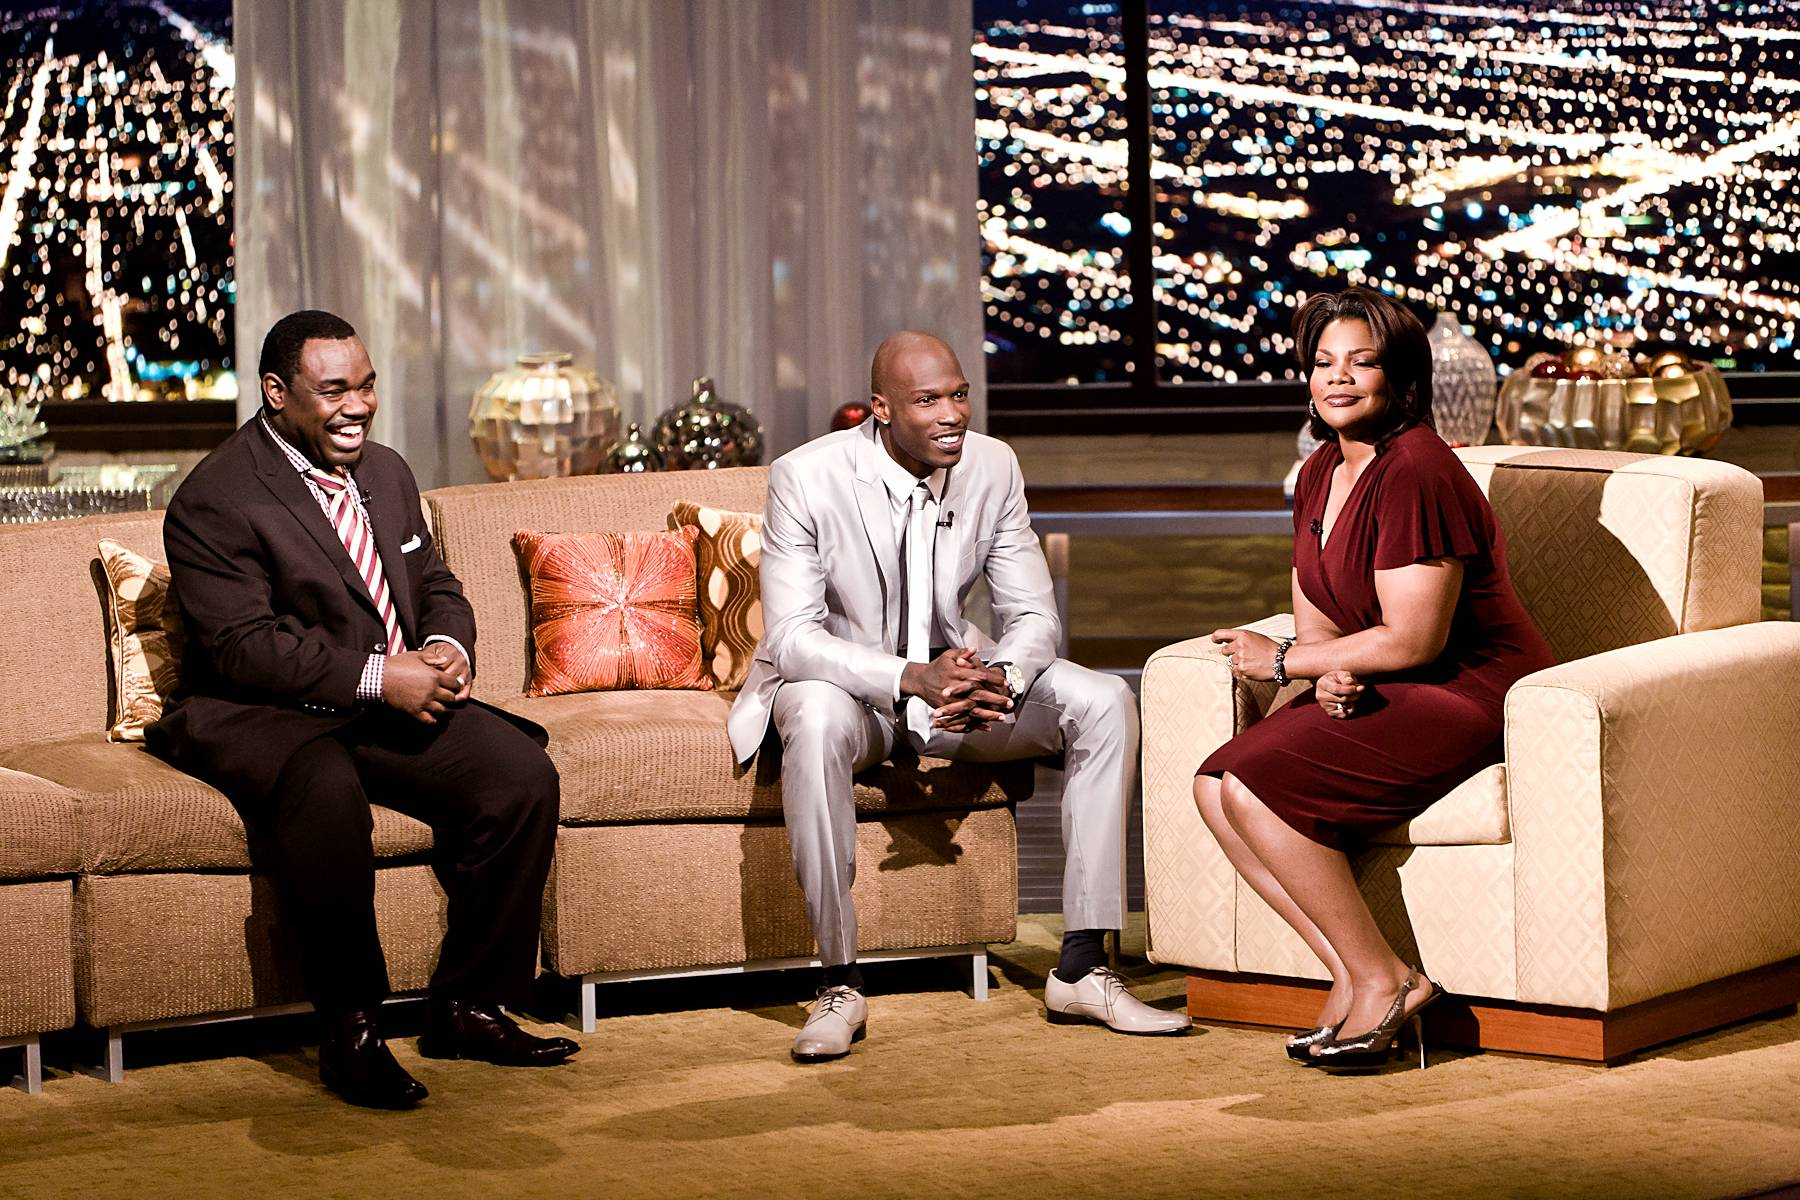 """Giving Back 85 Style\r - On occasion Ochocinco will invite fans to meet him for dinner using Twitter. """"I started doing this two to three years [ago]just giving back,"""" said the generous wide receiver. Moments later Ochocinco whipped out a pair of limited edition Christian Louboutin's as a gift to Mo'Nique.\r\r\r(Photo: Darnell Williams/BET)"""